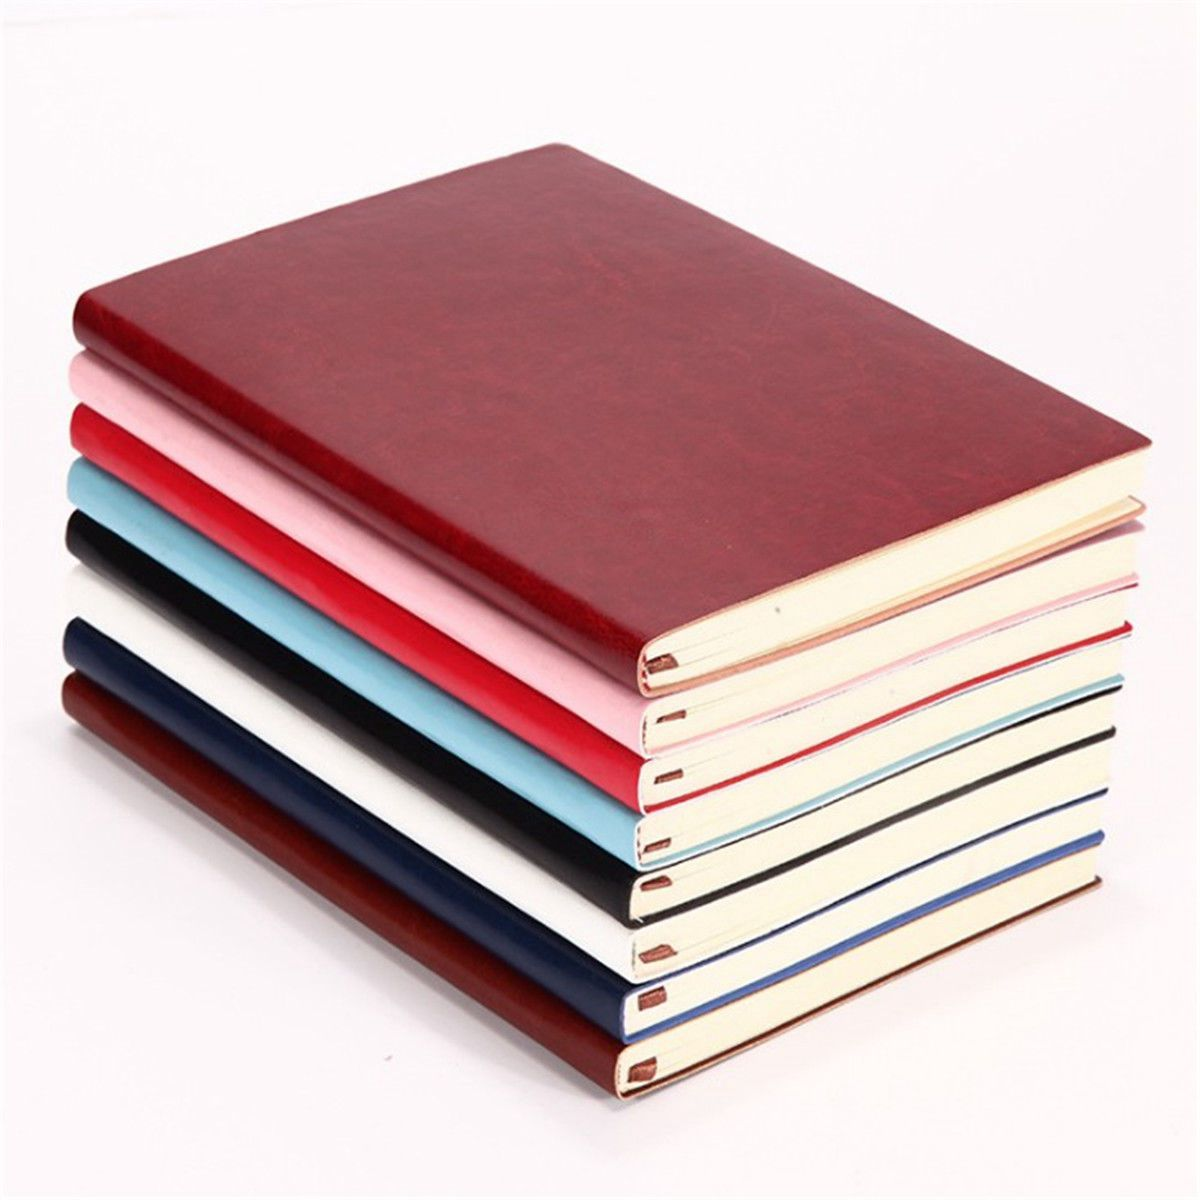 6 Color Random Soft Cover PU Leather Notebook Writing Journal 100 Page Lined Diary Book кпб b 3 page 6 page 10 page 6